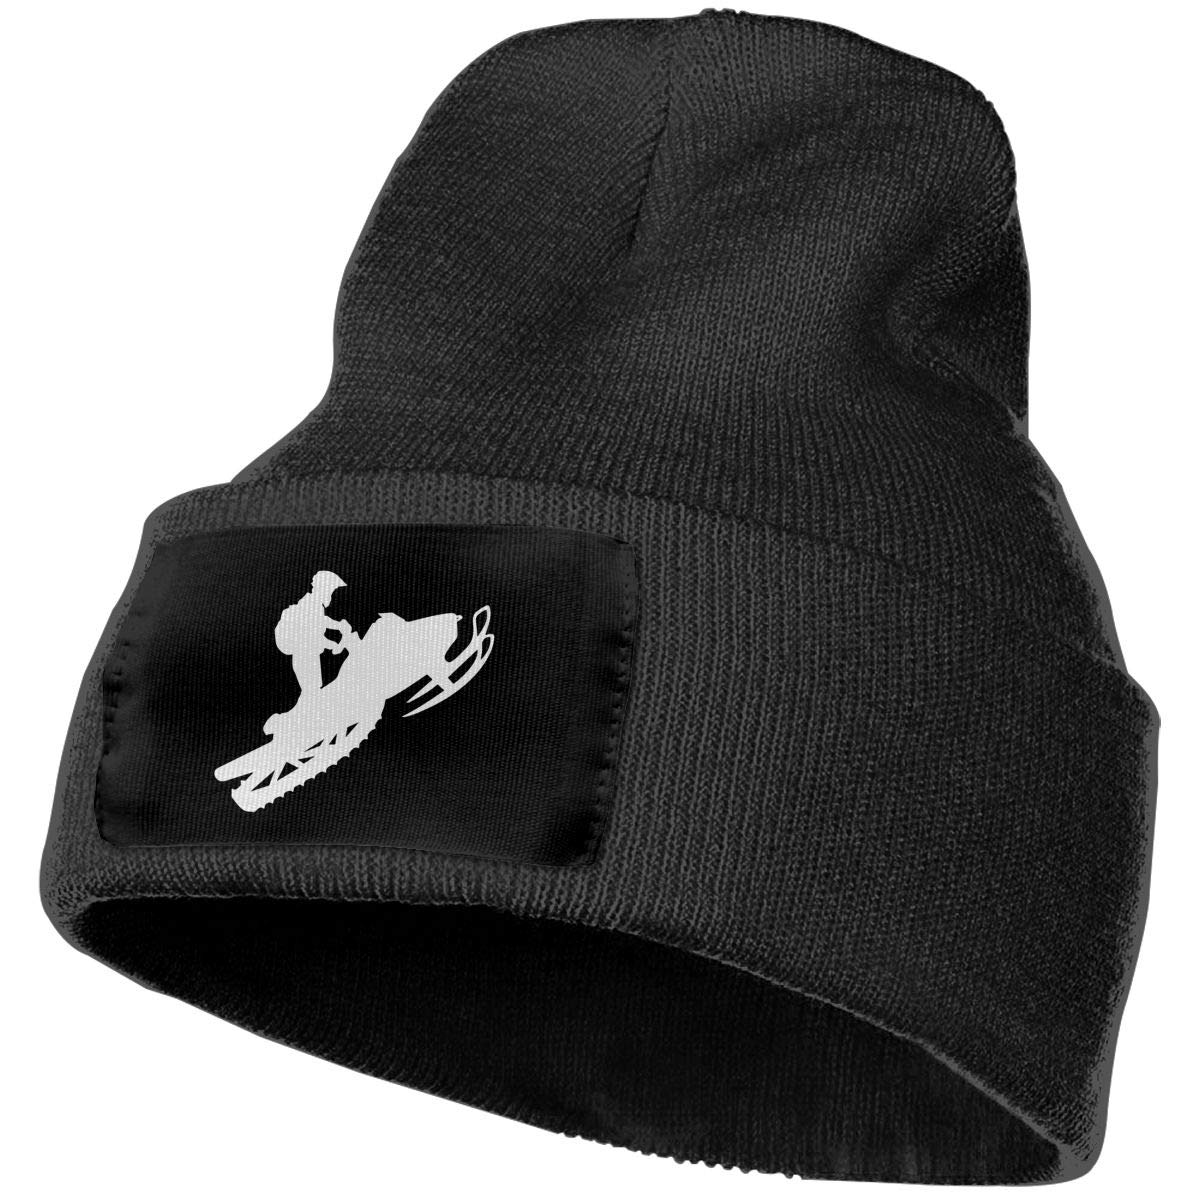 Stretchy /& Soft Winter Ski KnitCaps Snowmobile Men Womens Solid Color Knit Beanie Hat